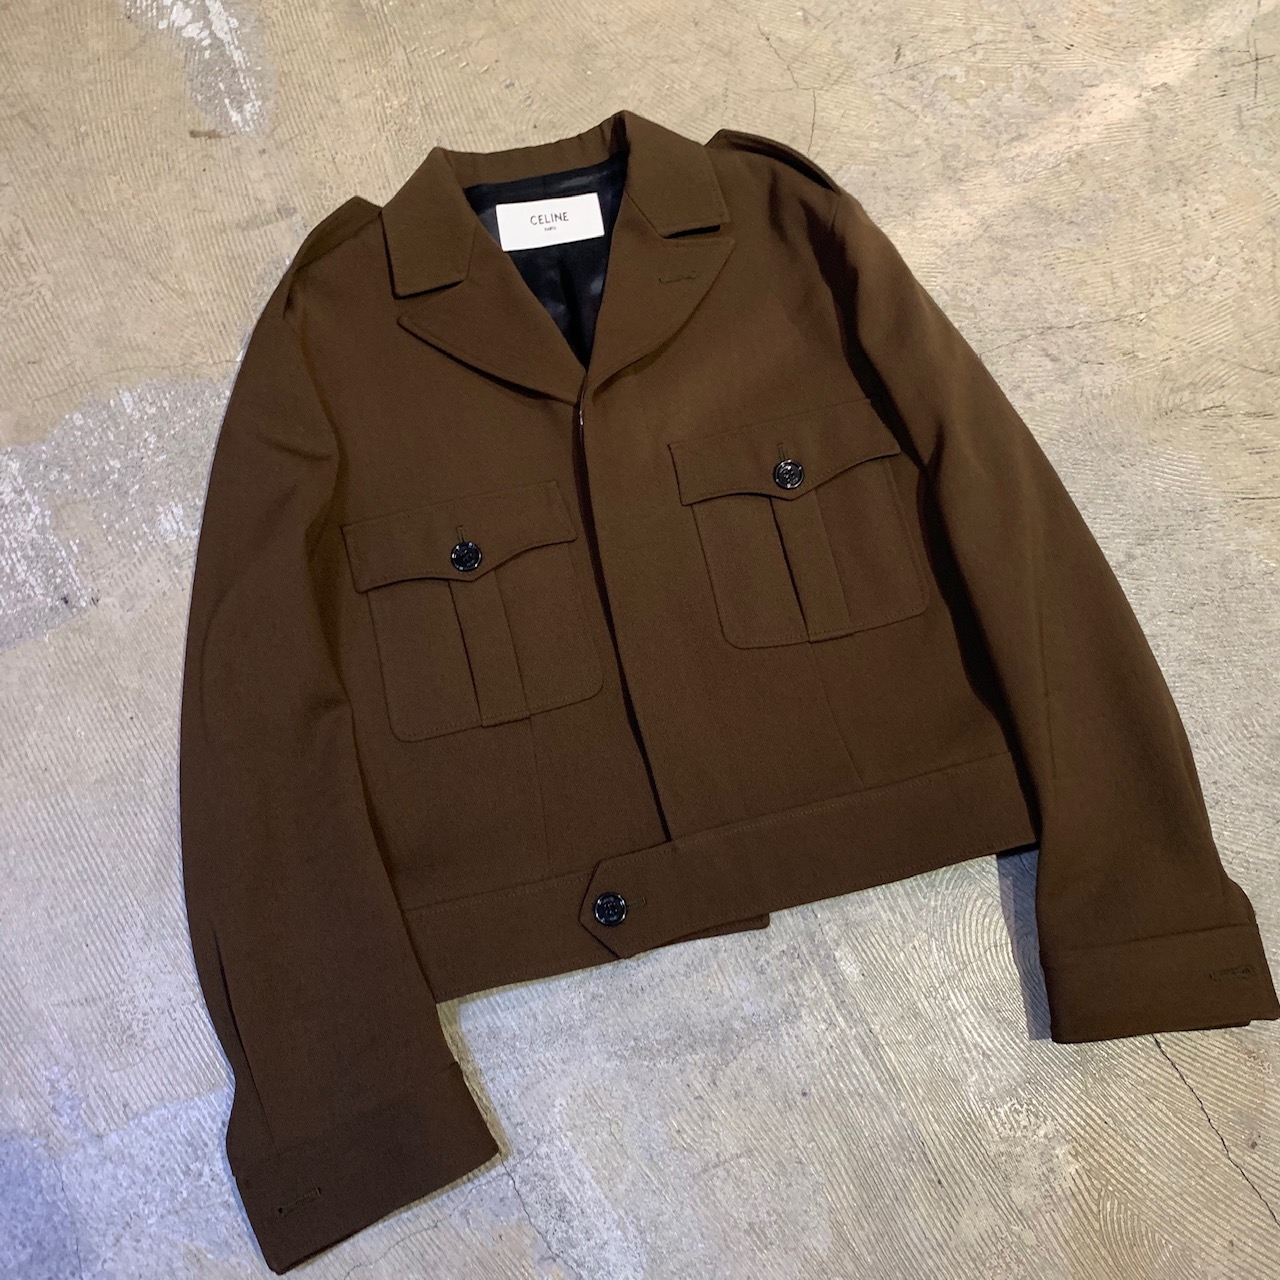 CELINE 19SS AVIATOR JACKET IN WOOL AND POLYESTER GABARDINE